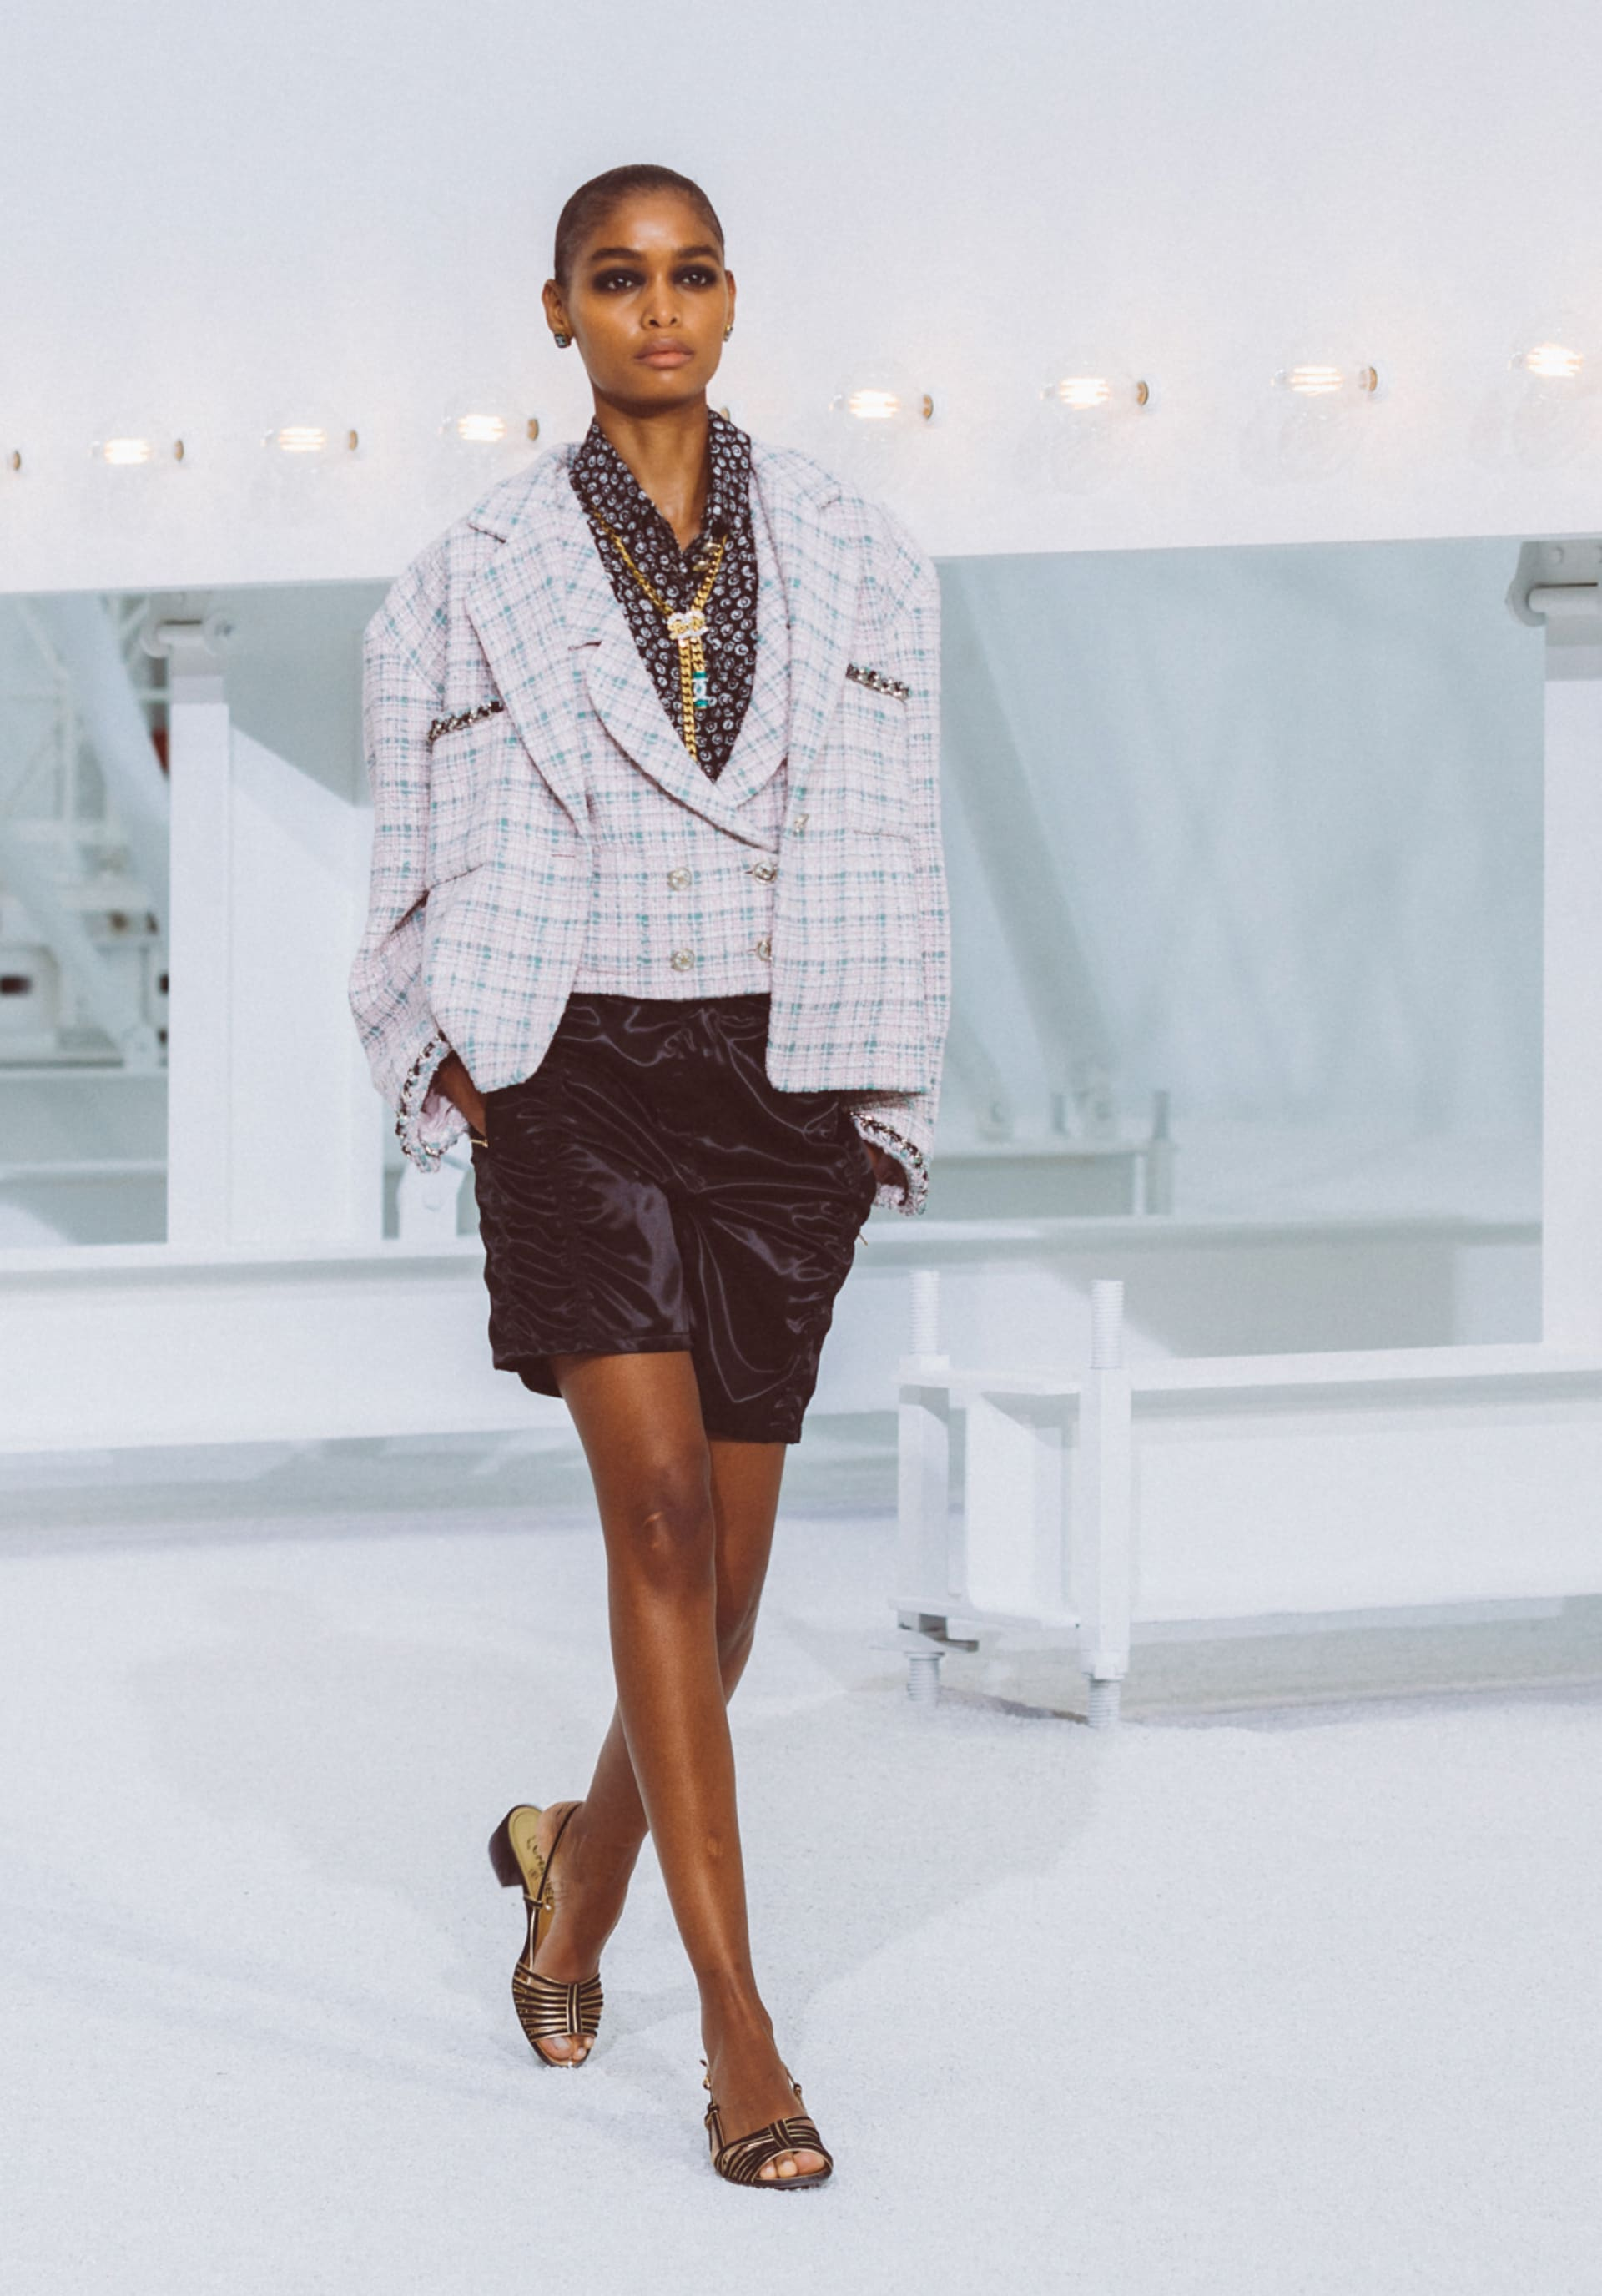 View 1 - Look4 - Spring-Summer 2021 - see full sized version